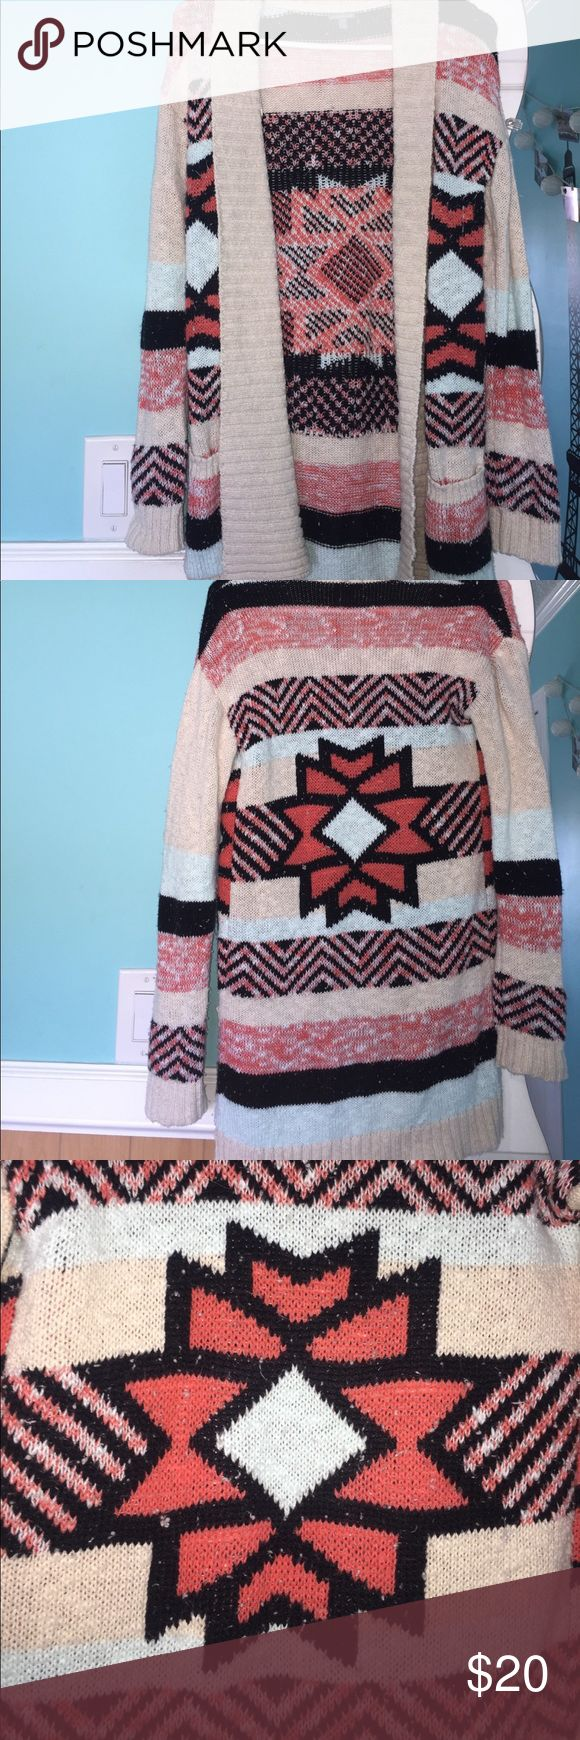 Aztec Print Coral/Light Blue/Black/Tan Cardigan Aztec Print very Beautiful Cardigan Sweater- Worn Once, Practically Brand New, No Flaws/Damages- Size: S from Charlotte Russe- Two Small Pockets in the Front- Very Comfortable Charlotte Russe Sweaters Cardigans